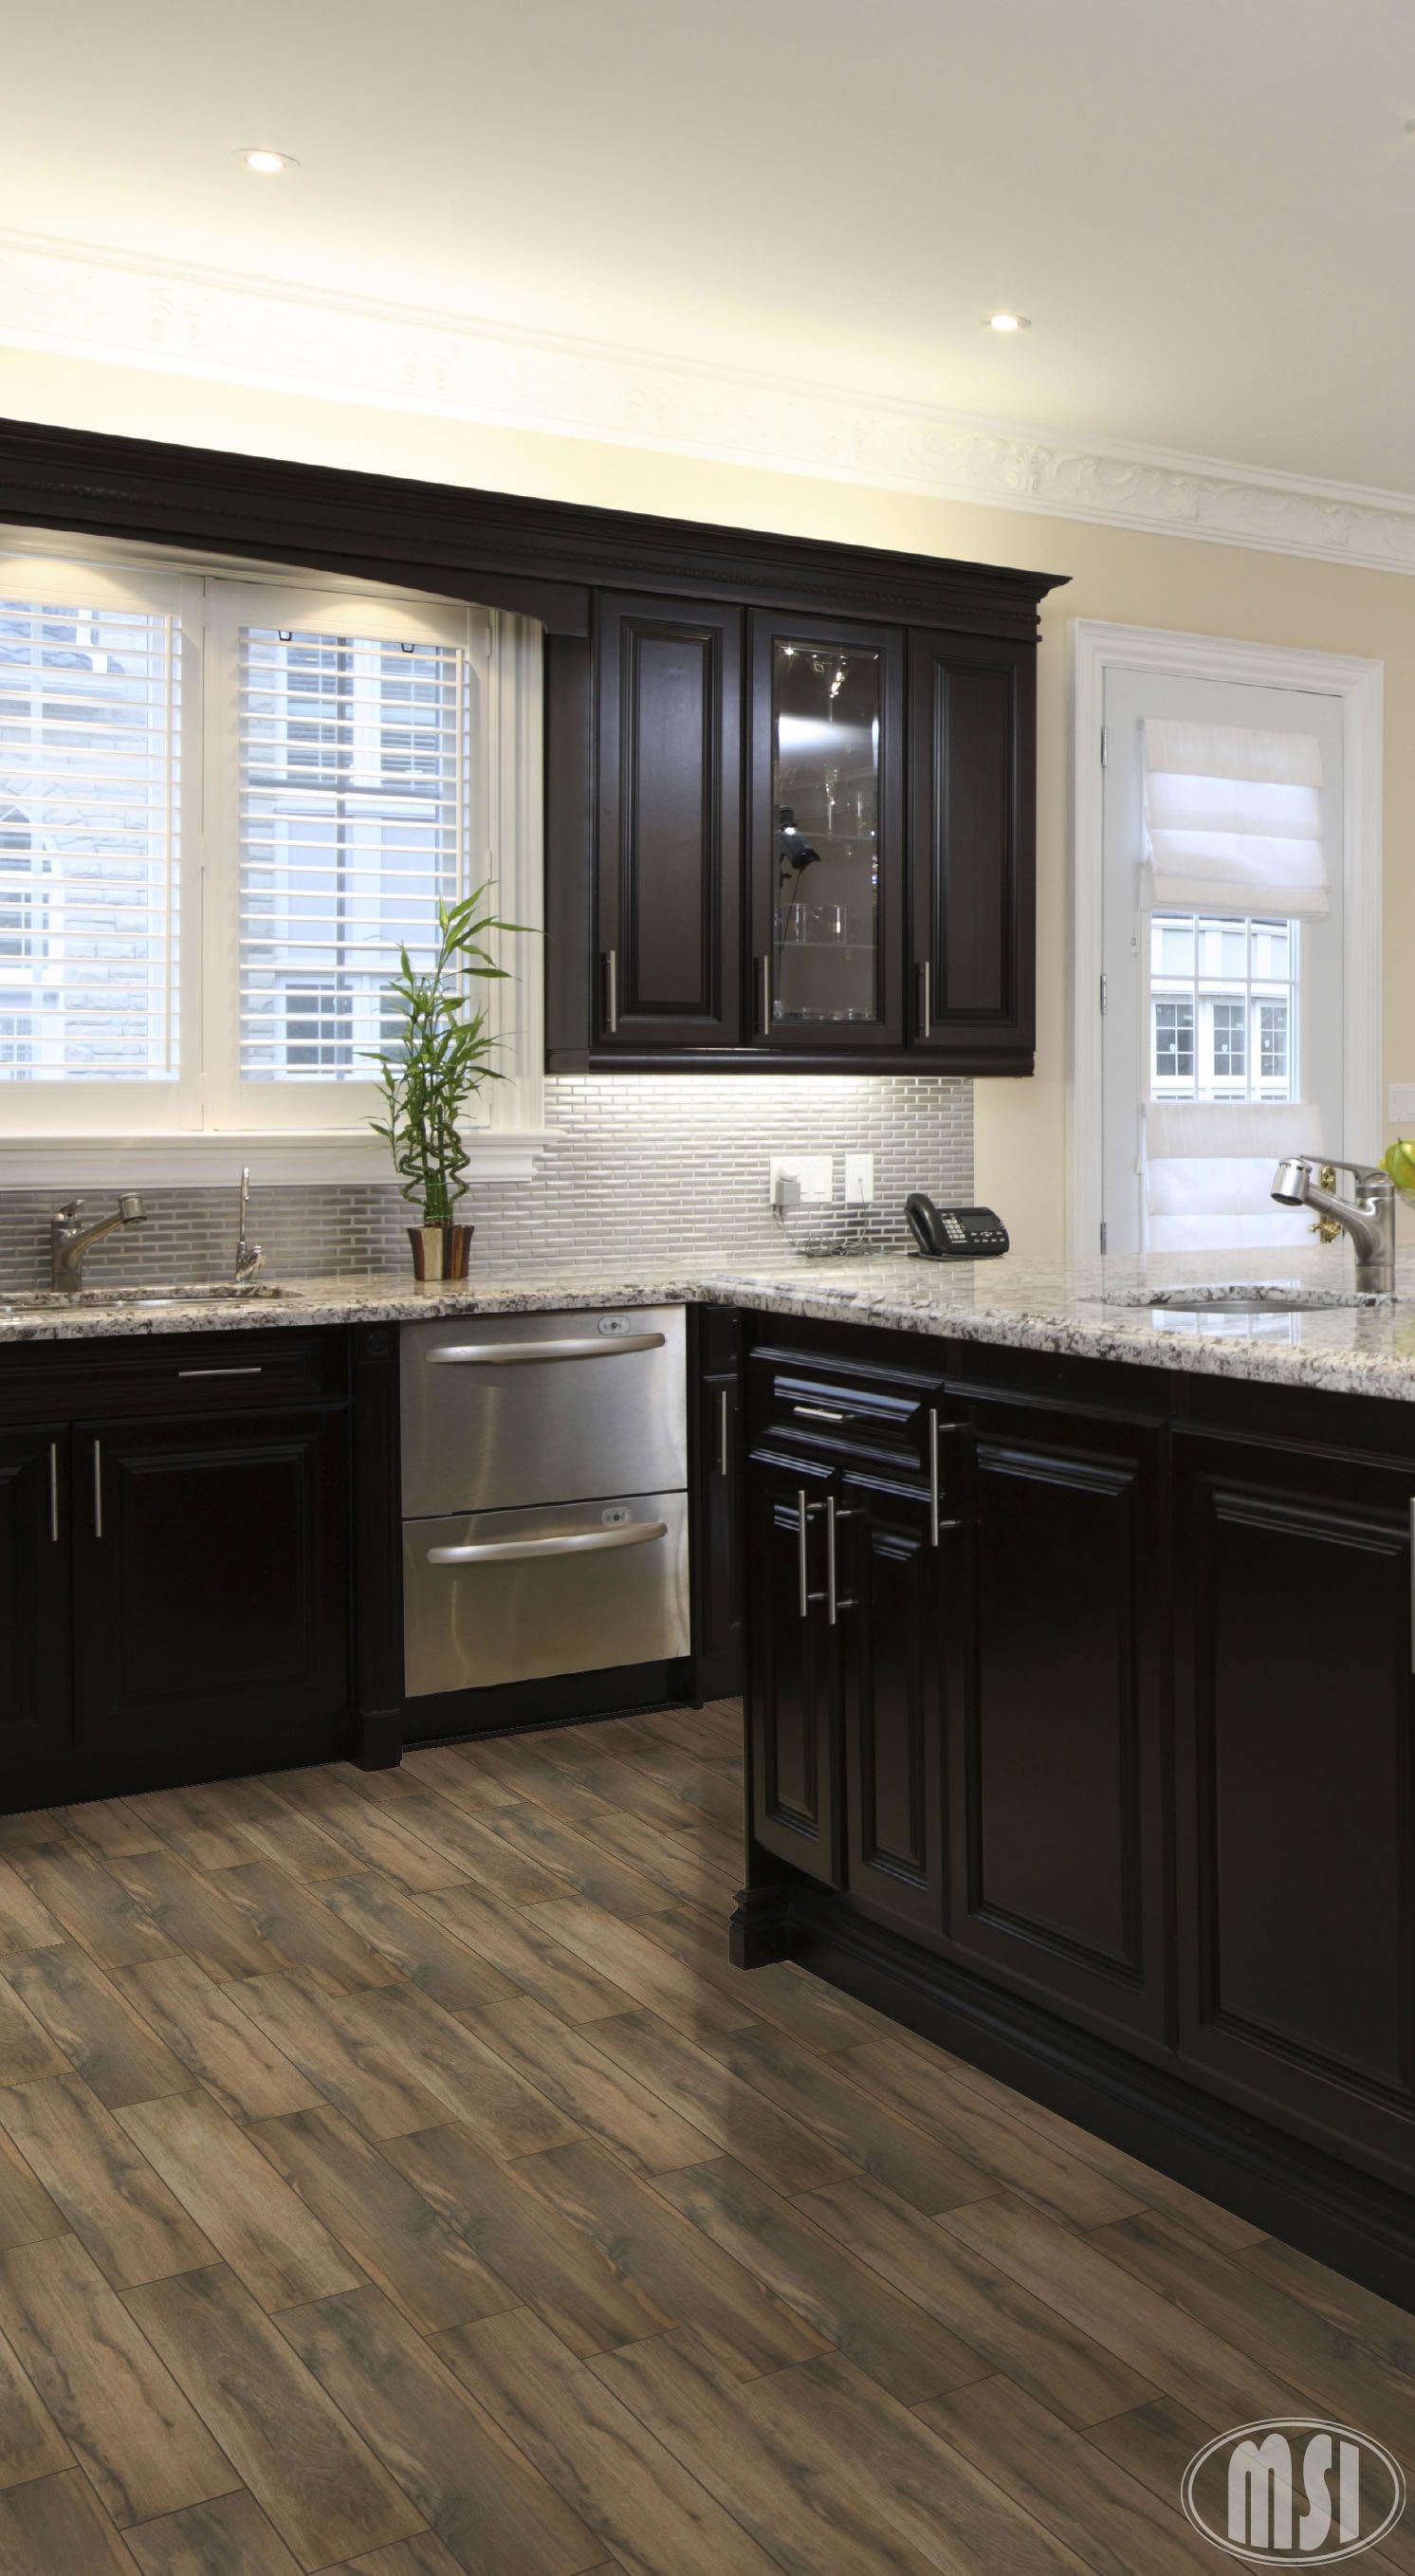 Moon White Granite Dark Kitchen Cabinets. : white and dark kitchen cabinets - Cheerinfomania.Com